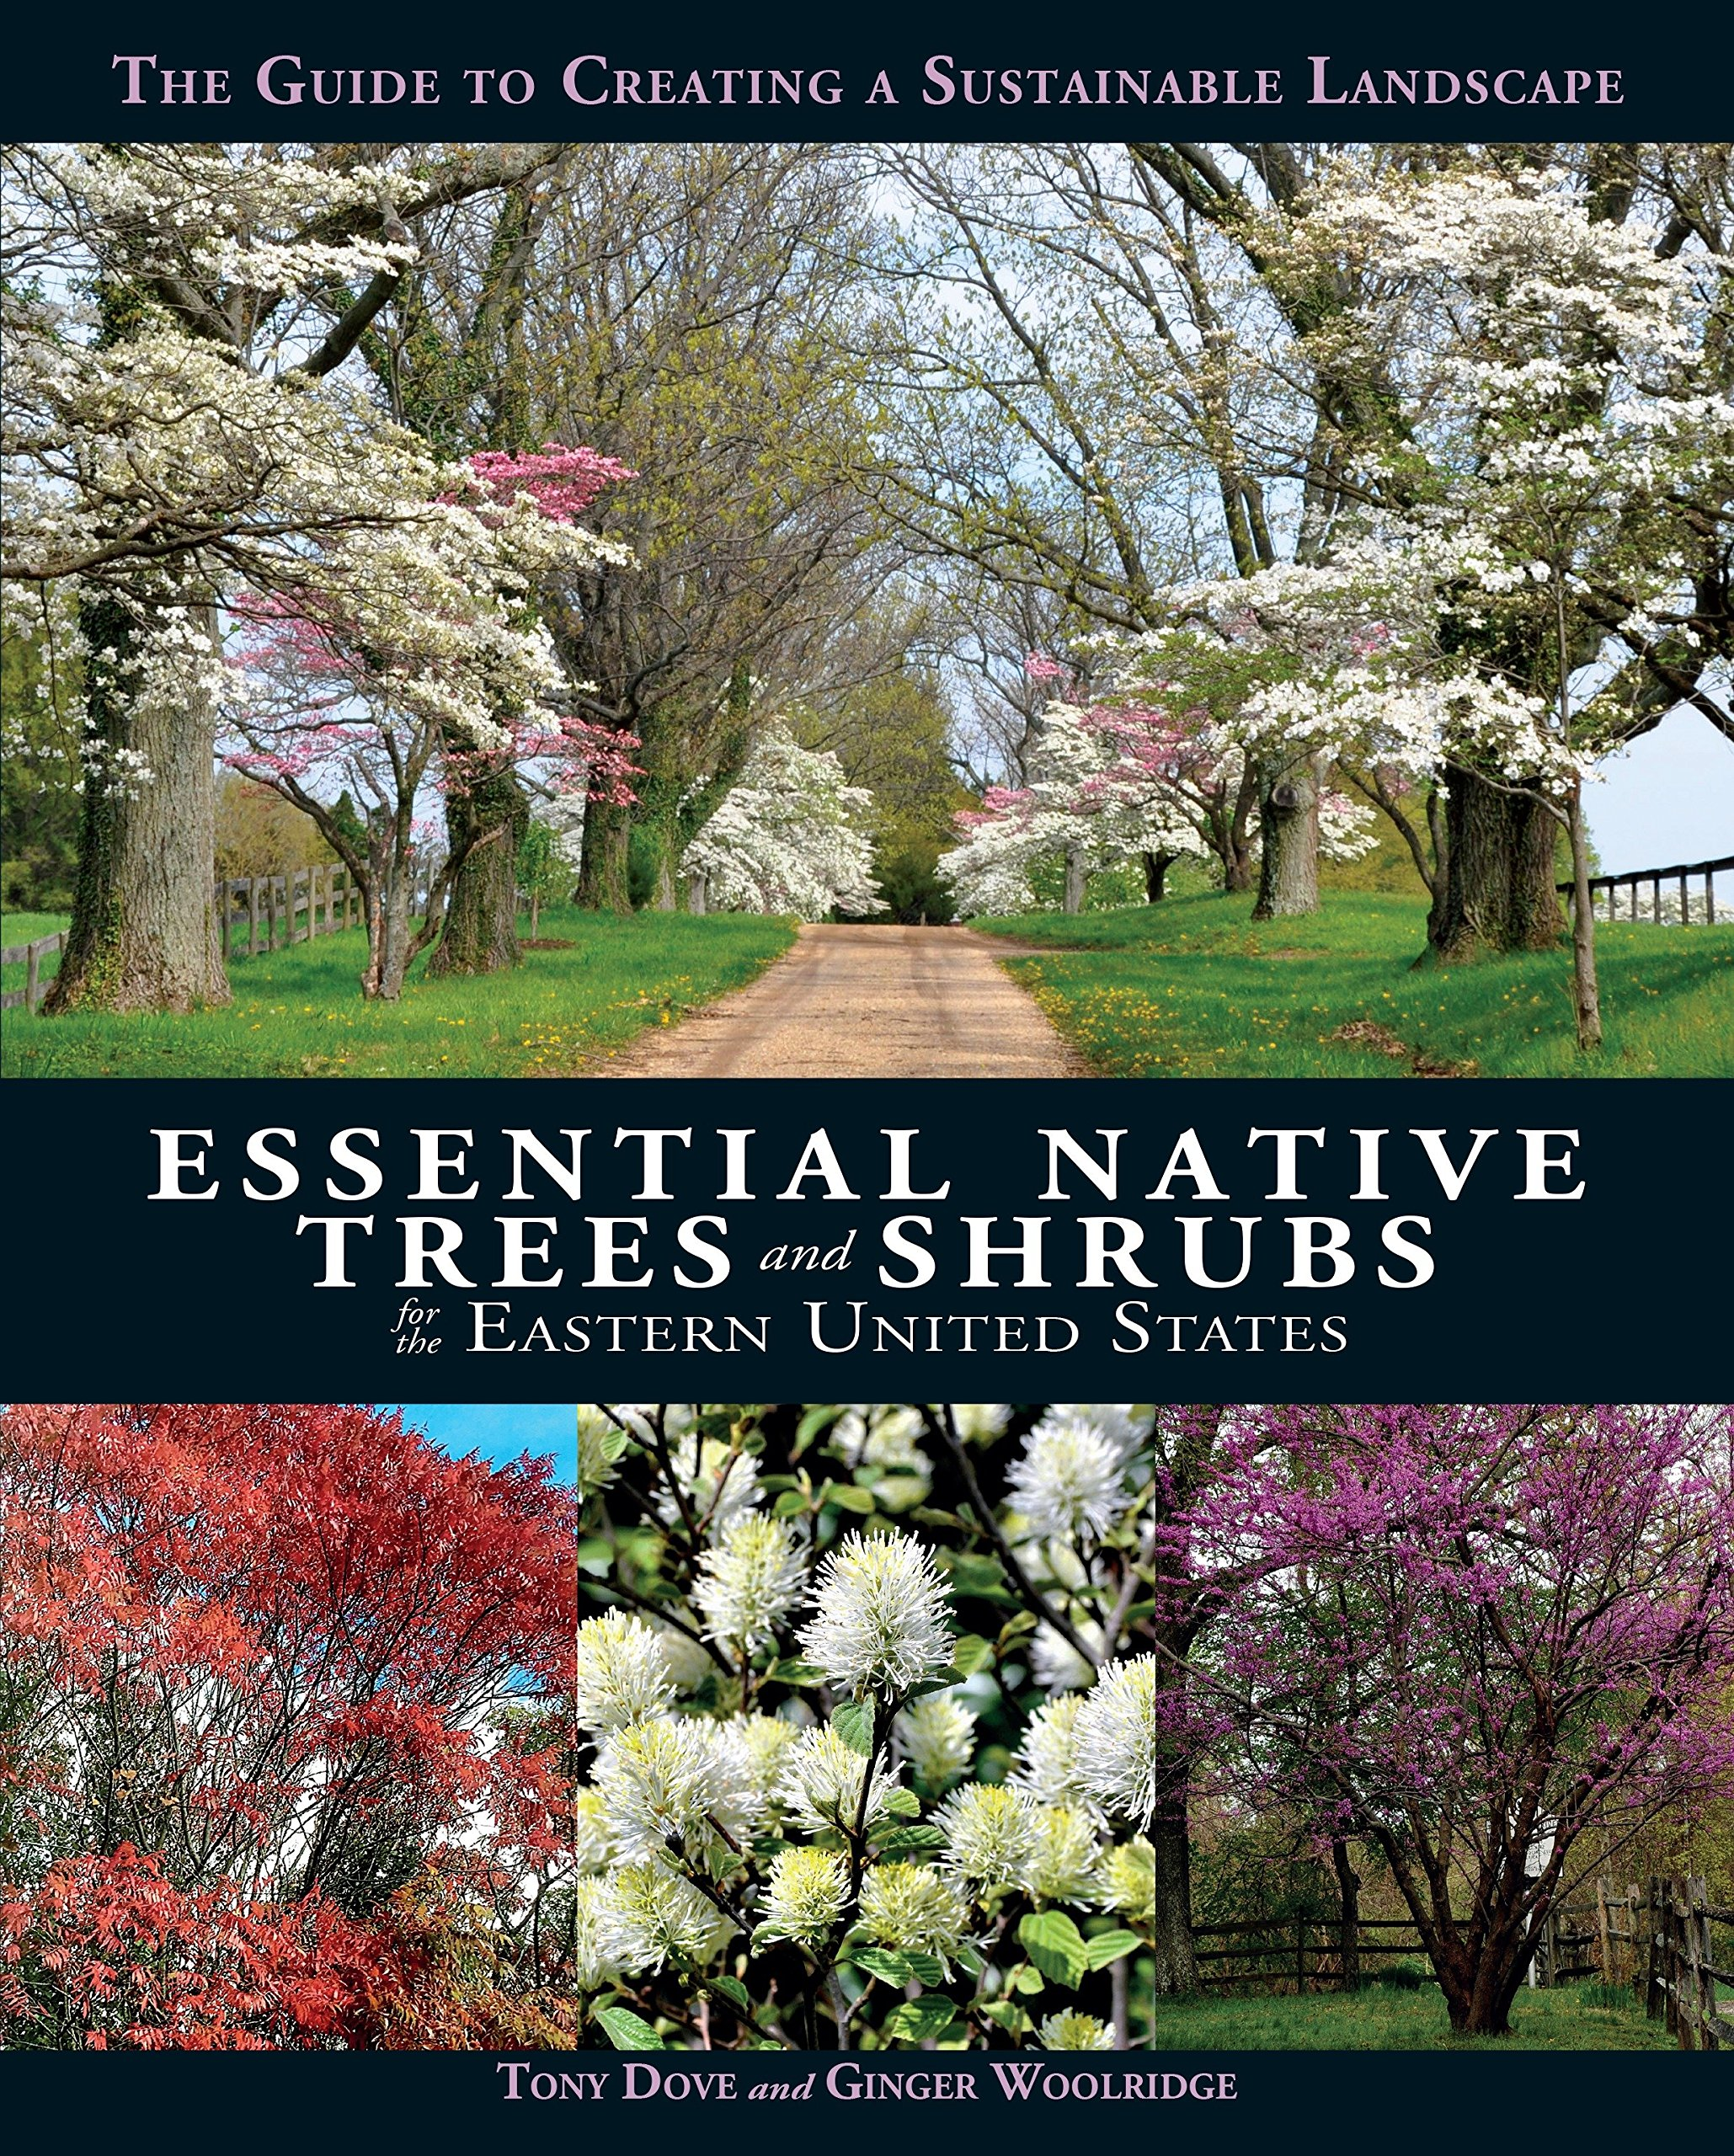 Essential Native Trees and Shrubs for the Eastern United States: The Guide to Creating a Sustainable Landscape